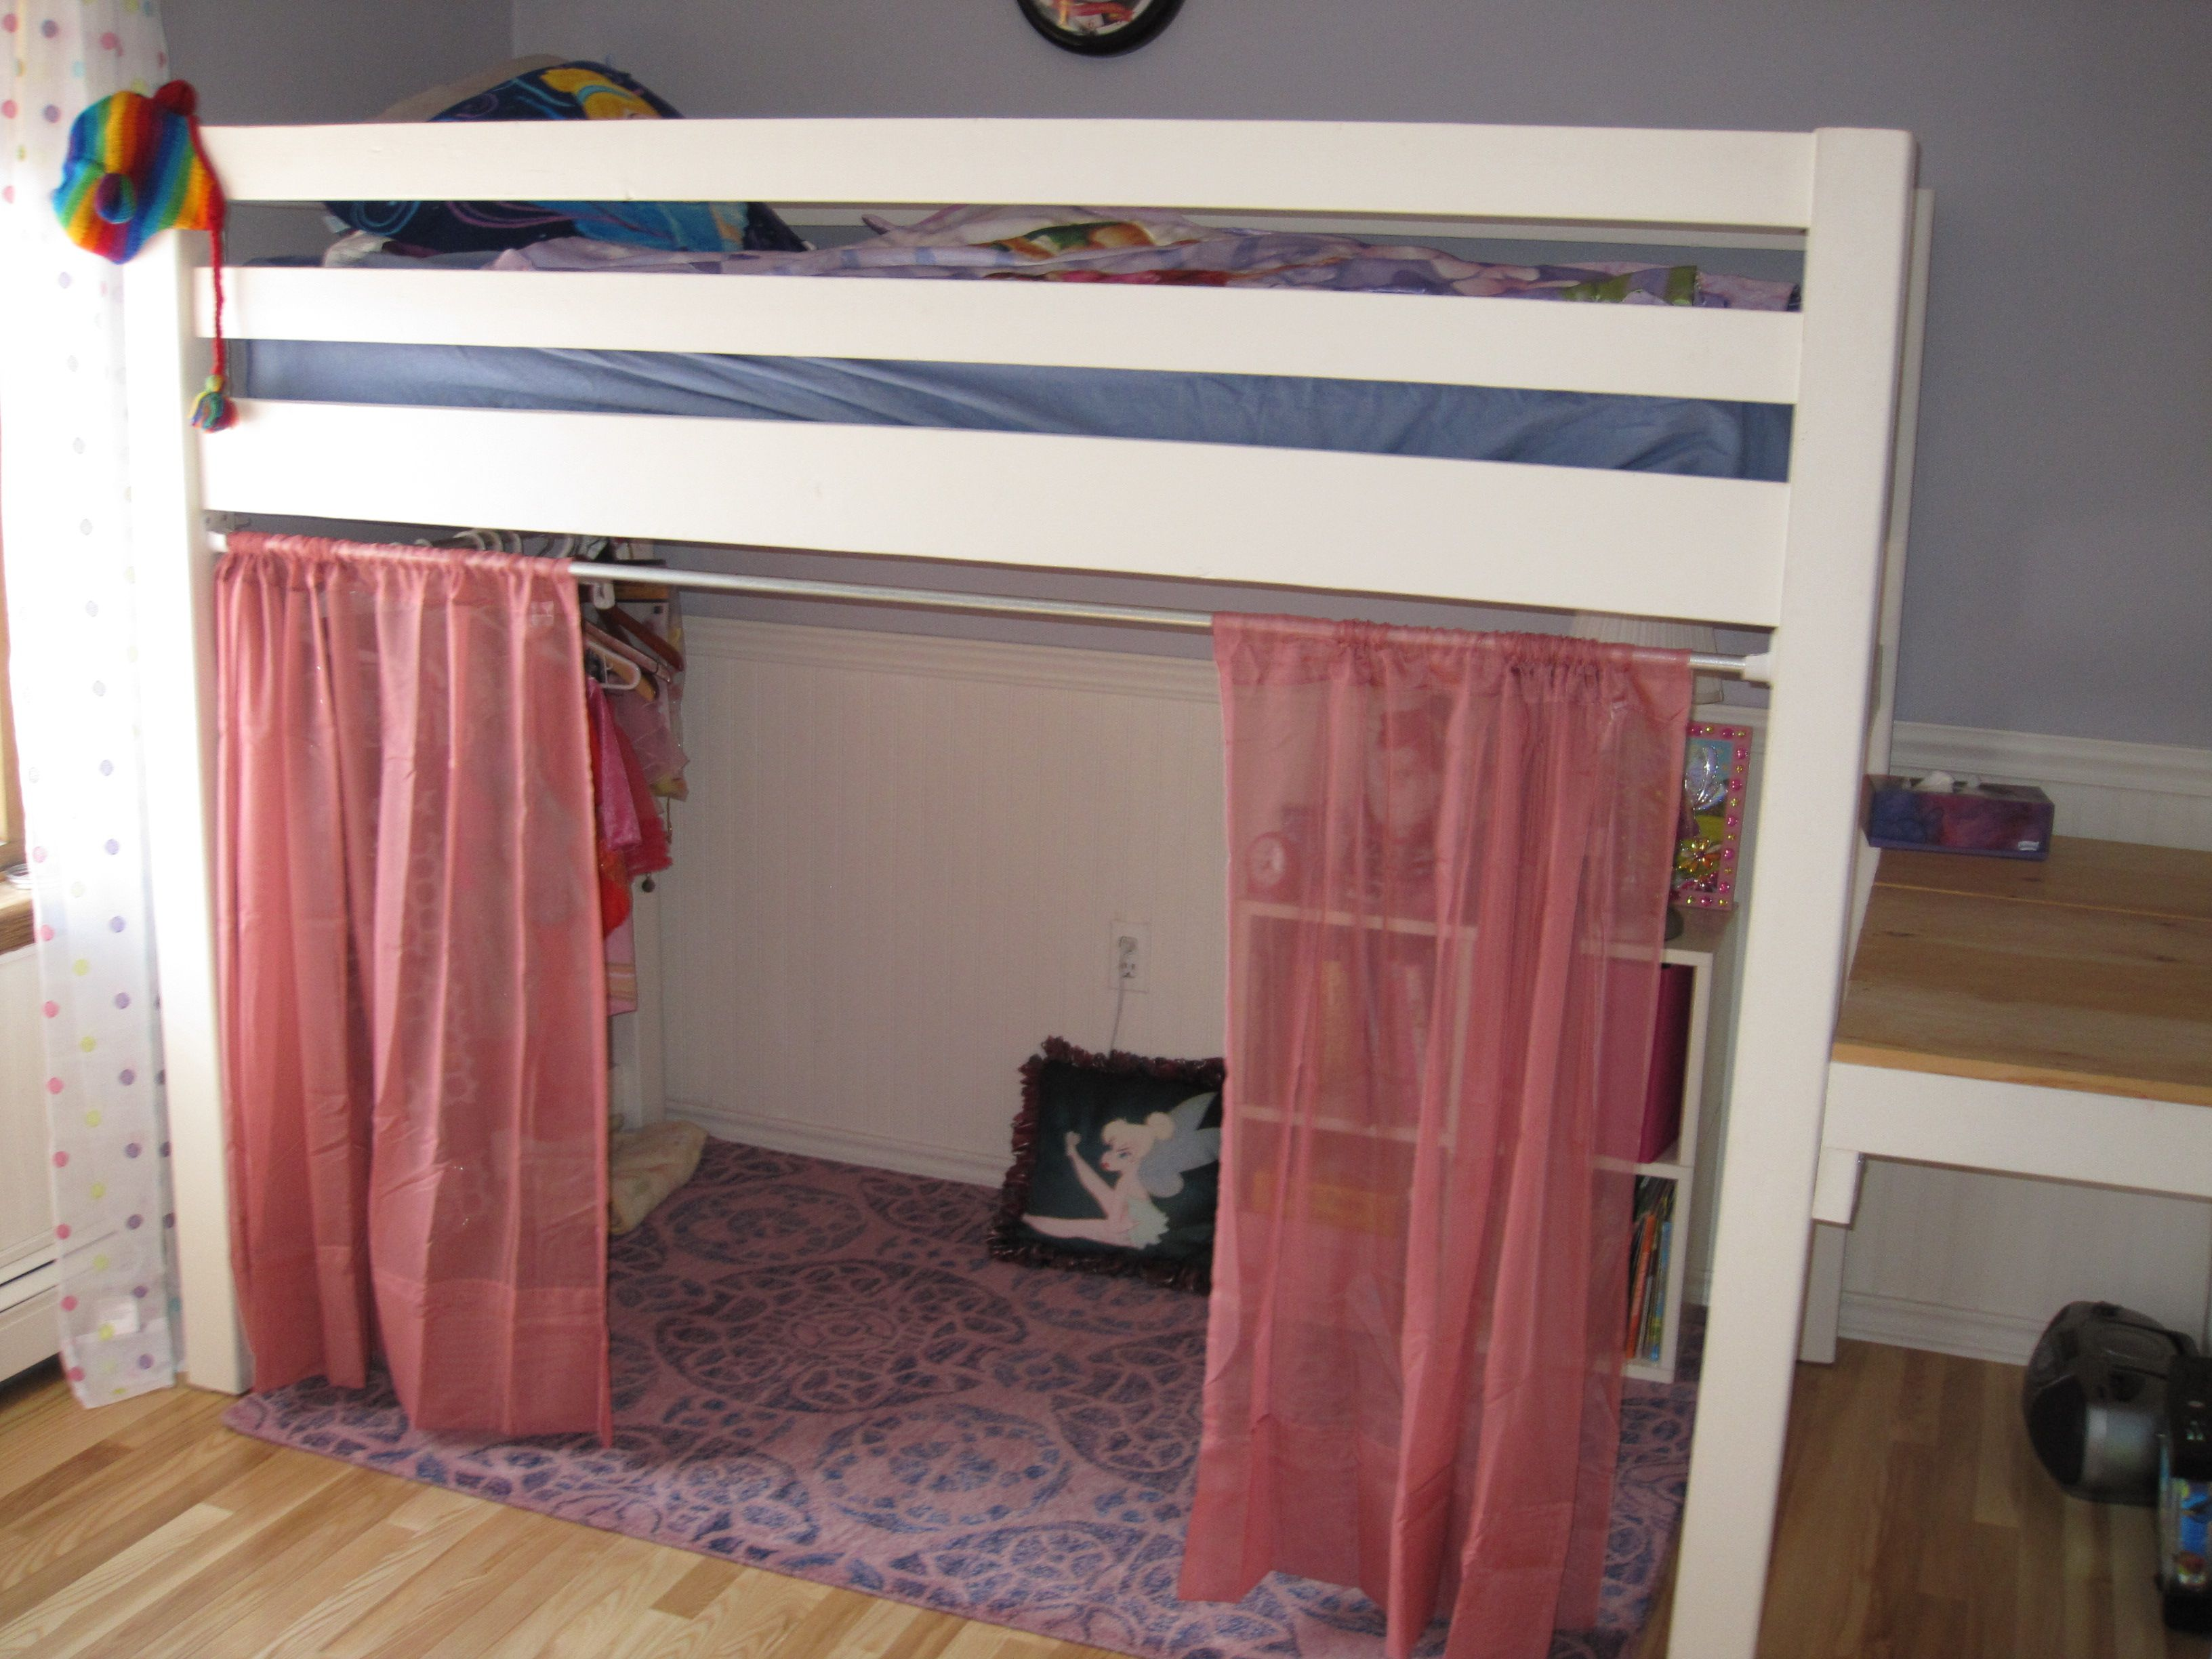 Loft bed curtain ideas  Pin by Verve on Current ideas  Pinterest  Bunk bed Room and Bedrooms